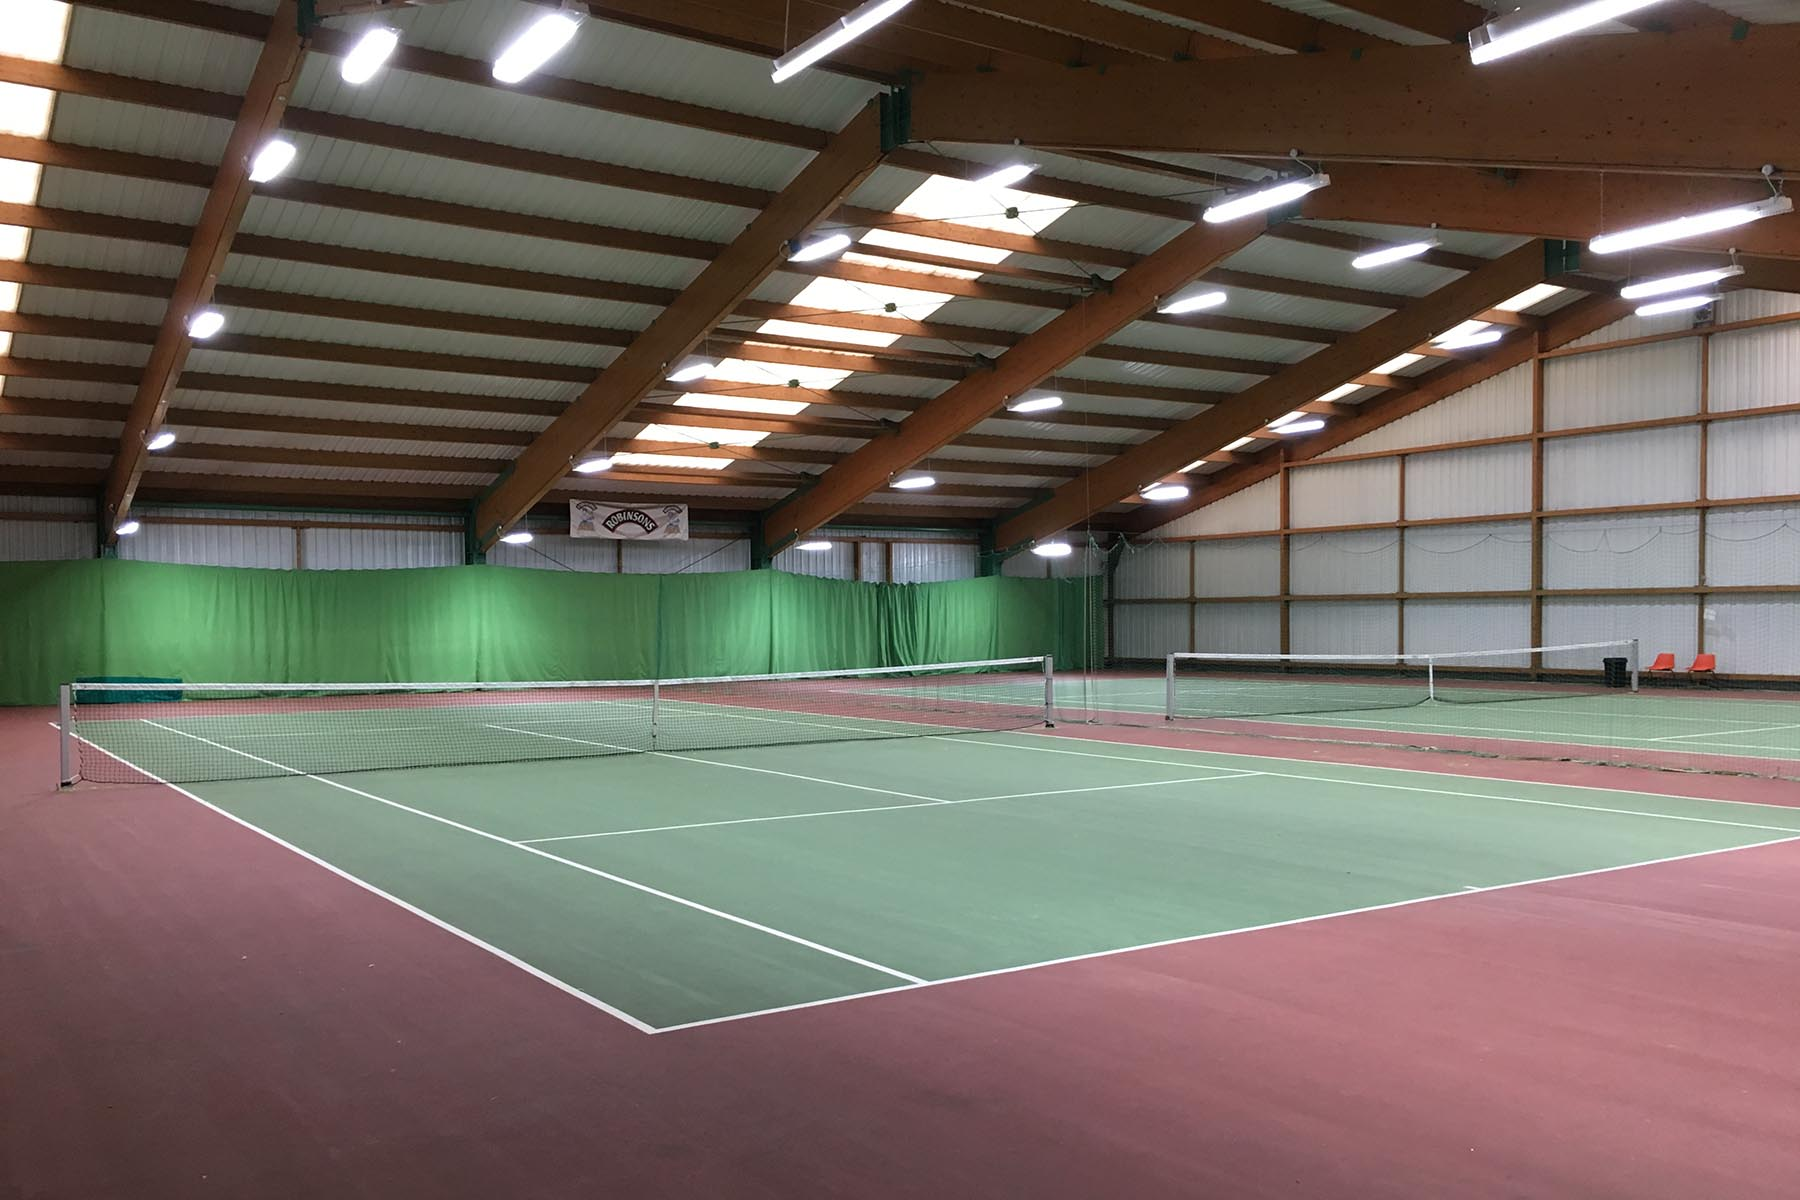 Indoor Courts - We have the use of 2 indoor courts providing year round play no matter the weather. Courts are available to hire from Downton Leisure Centre at a discounted rate throughout the year.Book a court →